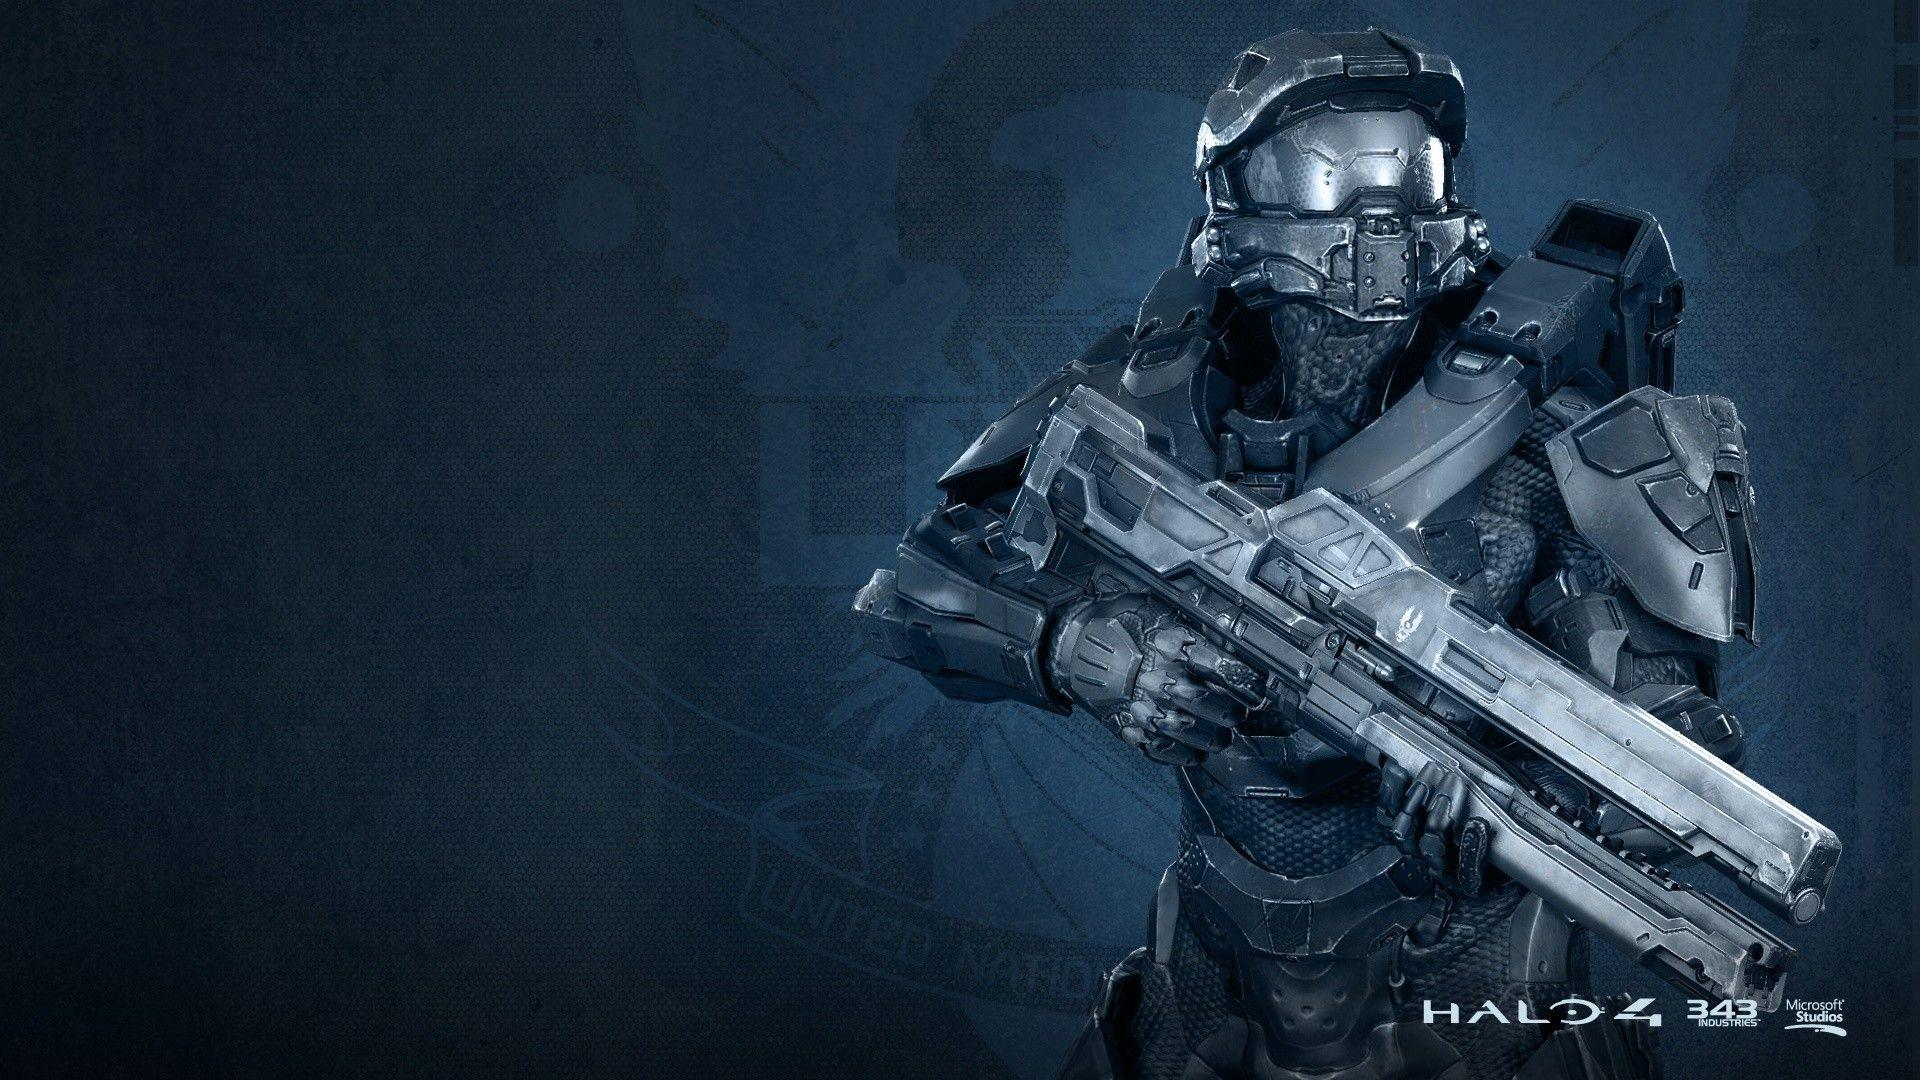 Halo Wallpapers HD 1080p - Wallpaper Cave